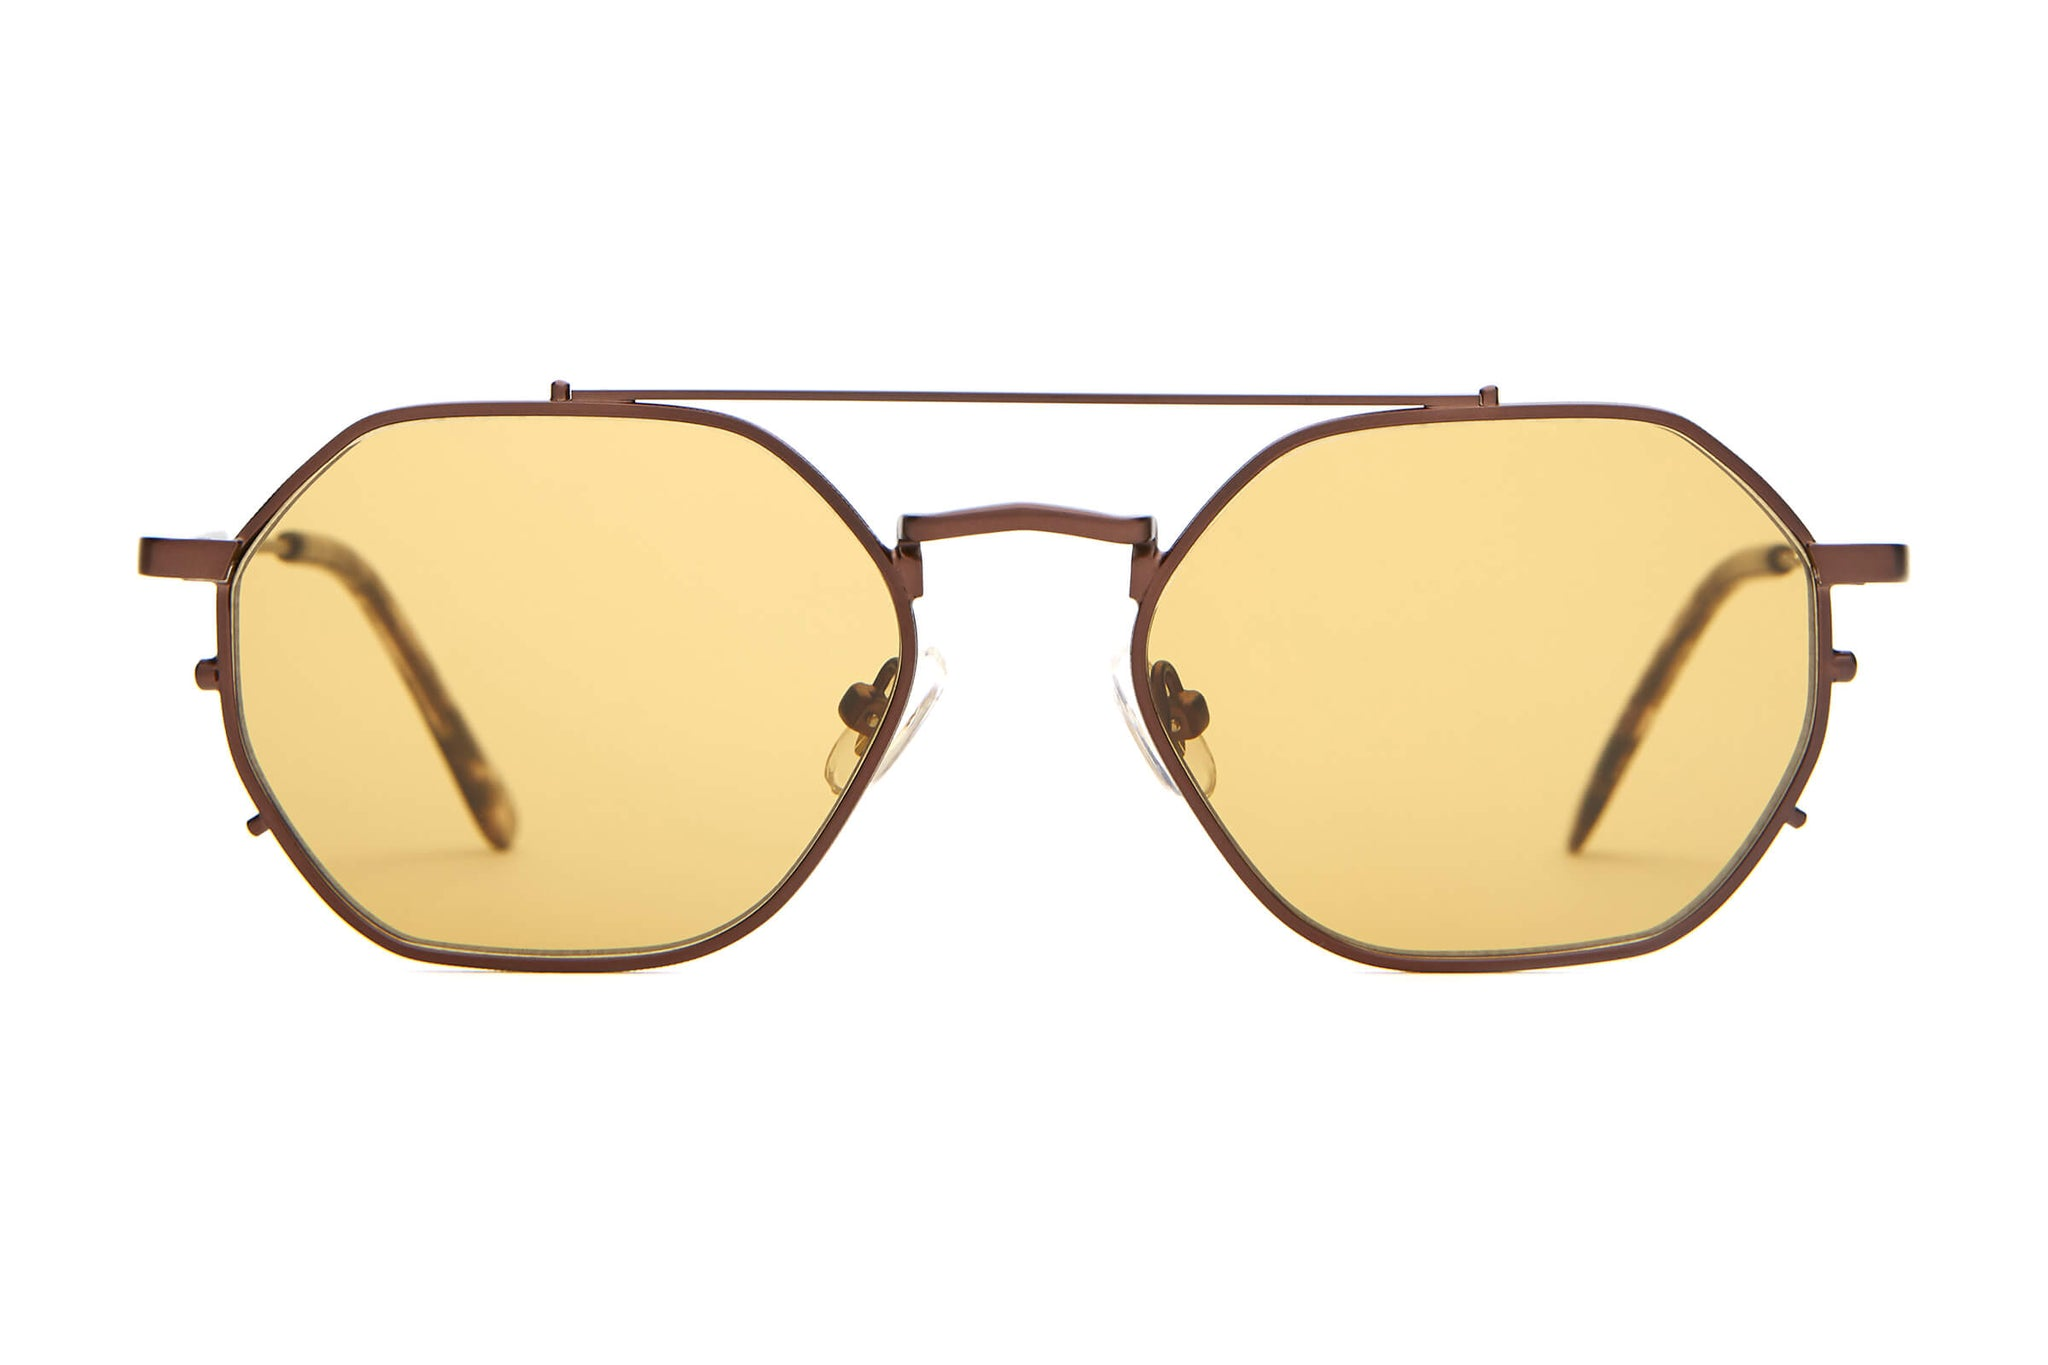 The Jazz Safari - Espresso & Espresso Tortoise - / Mustard - Sunglasses